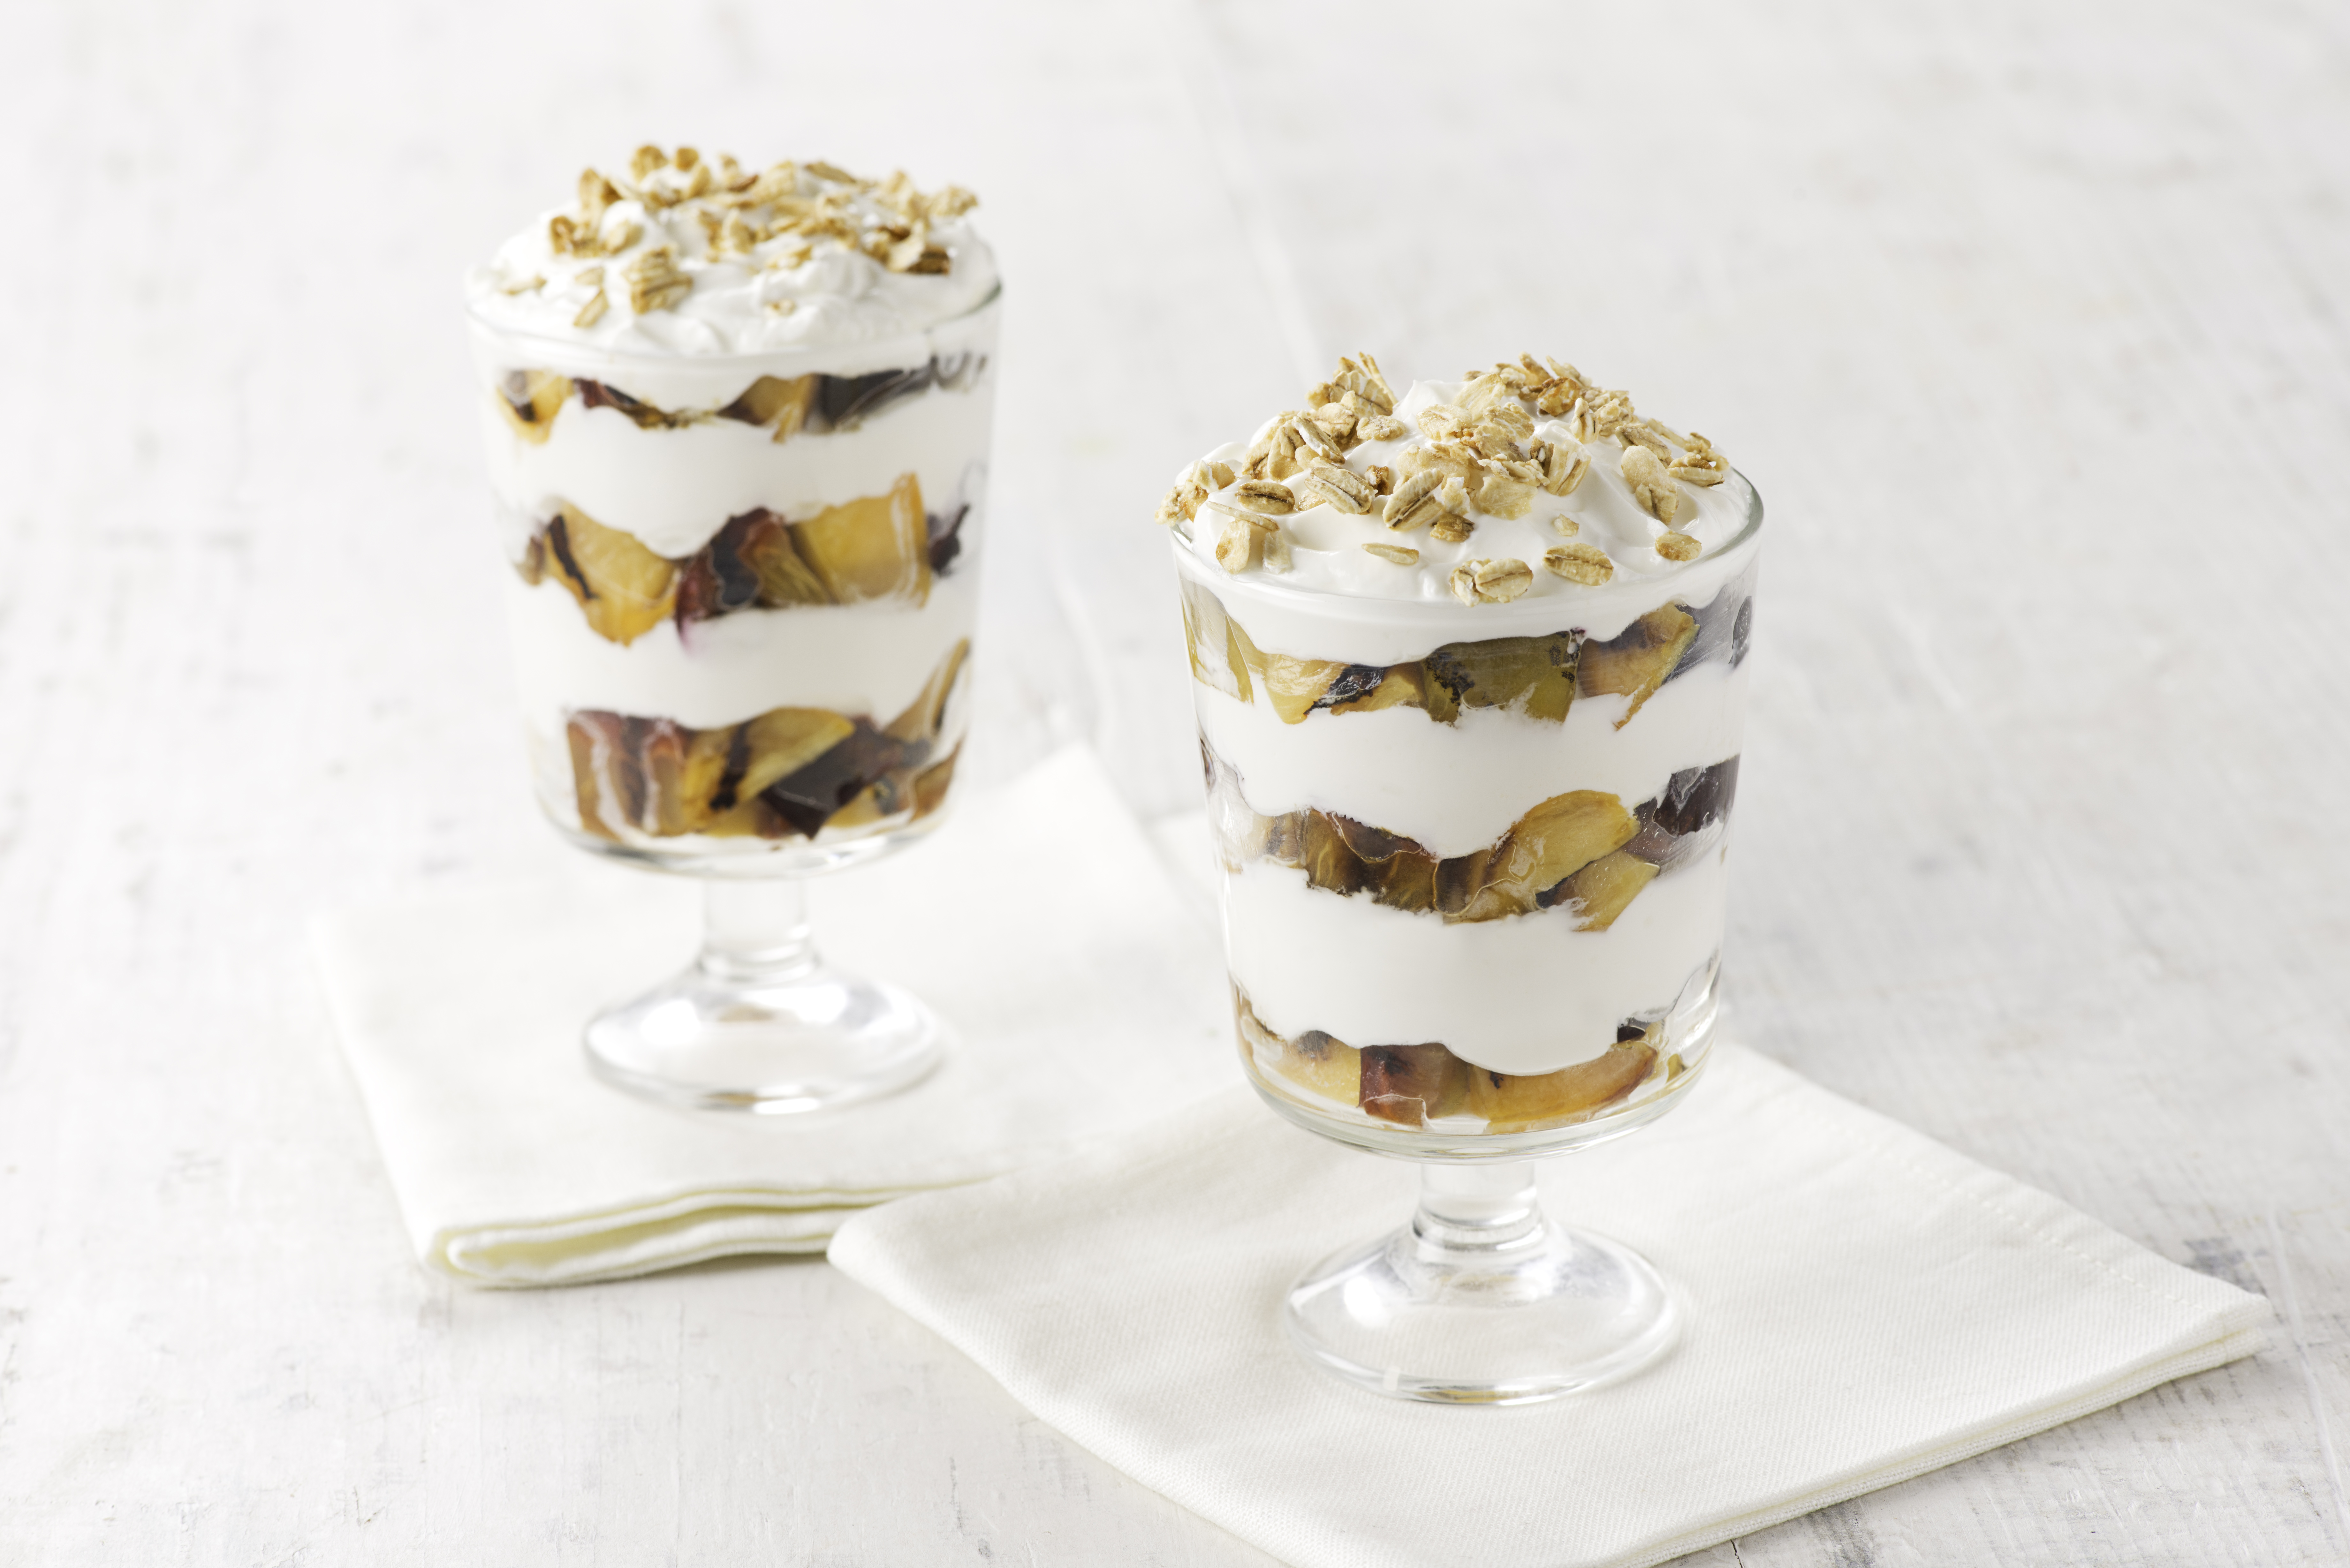 grilled stone fruit yogurt parfait recipe image George Foreman™ evolve grill